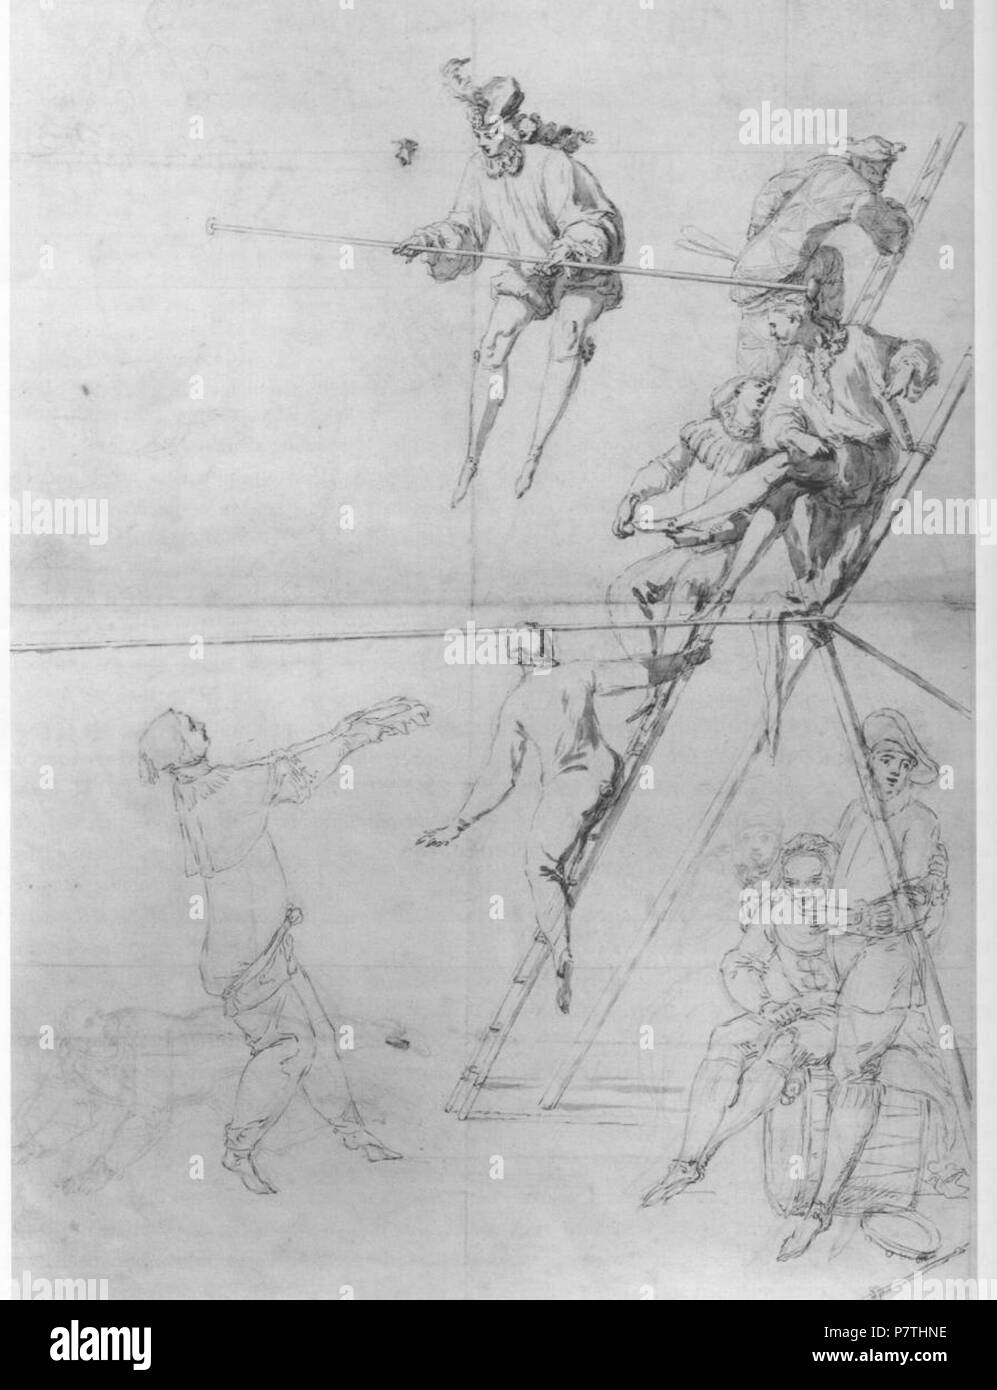 In the Nationalmuseum, Stockholm; 83 cm x 56 cm. Description in the book Painters and Public Life in Eighteenth-Century Paris (Crow, Thomas E.; Yale University Press, 1985): 'A large, unfinished drawing by Claude Gillot now in Stockholm illustrates precisely the newly mixed theatrical genre that resulted (Plate 14): while an acrobat leaps several feet above the tightrope, various actors from the Italian comedy gather below; Harlequin climbs the standard that supports the rope, one pretends to be able to catch a falling performer in his hat.' . Unknown date 13 Acrobats and Figures from the Comm - Stock Image